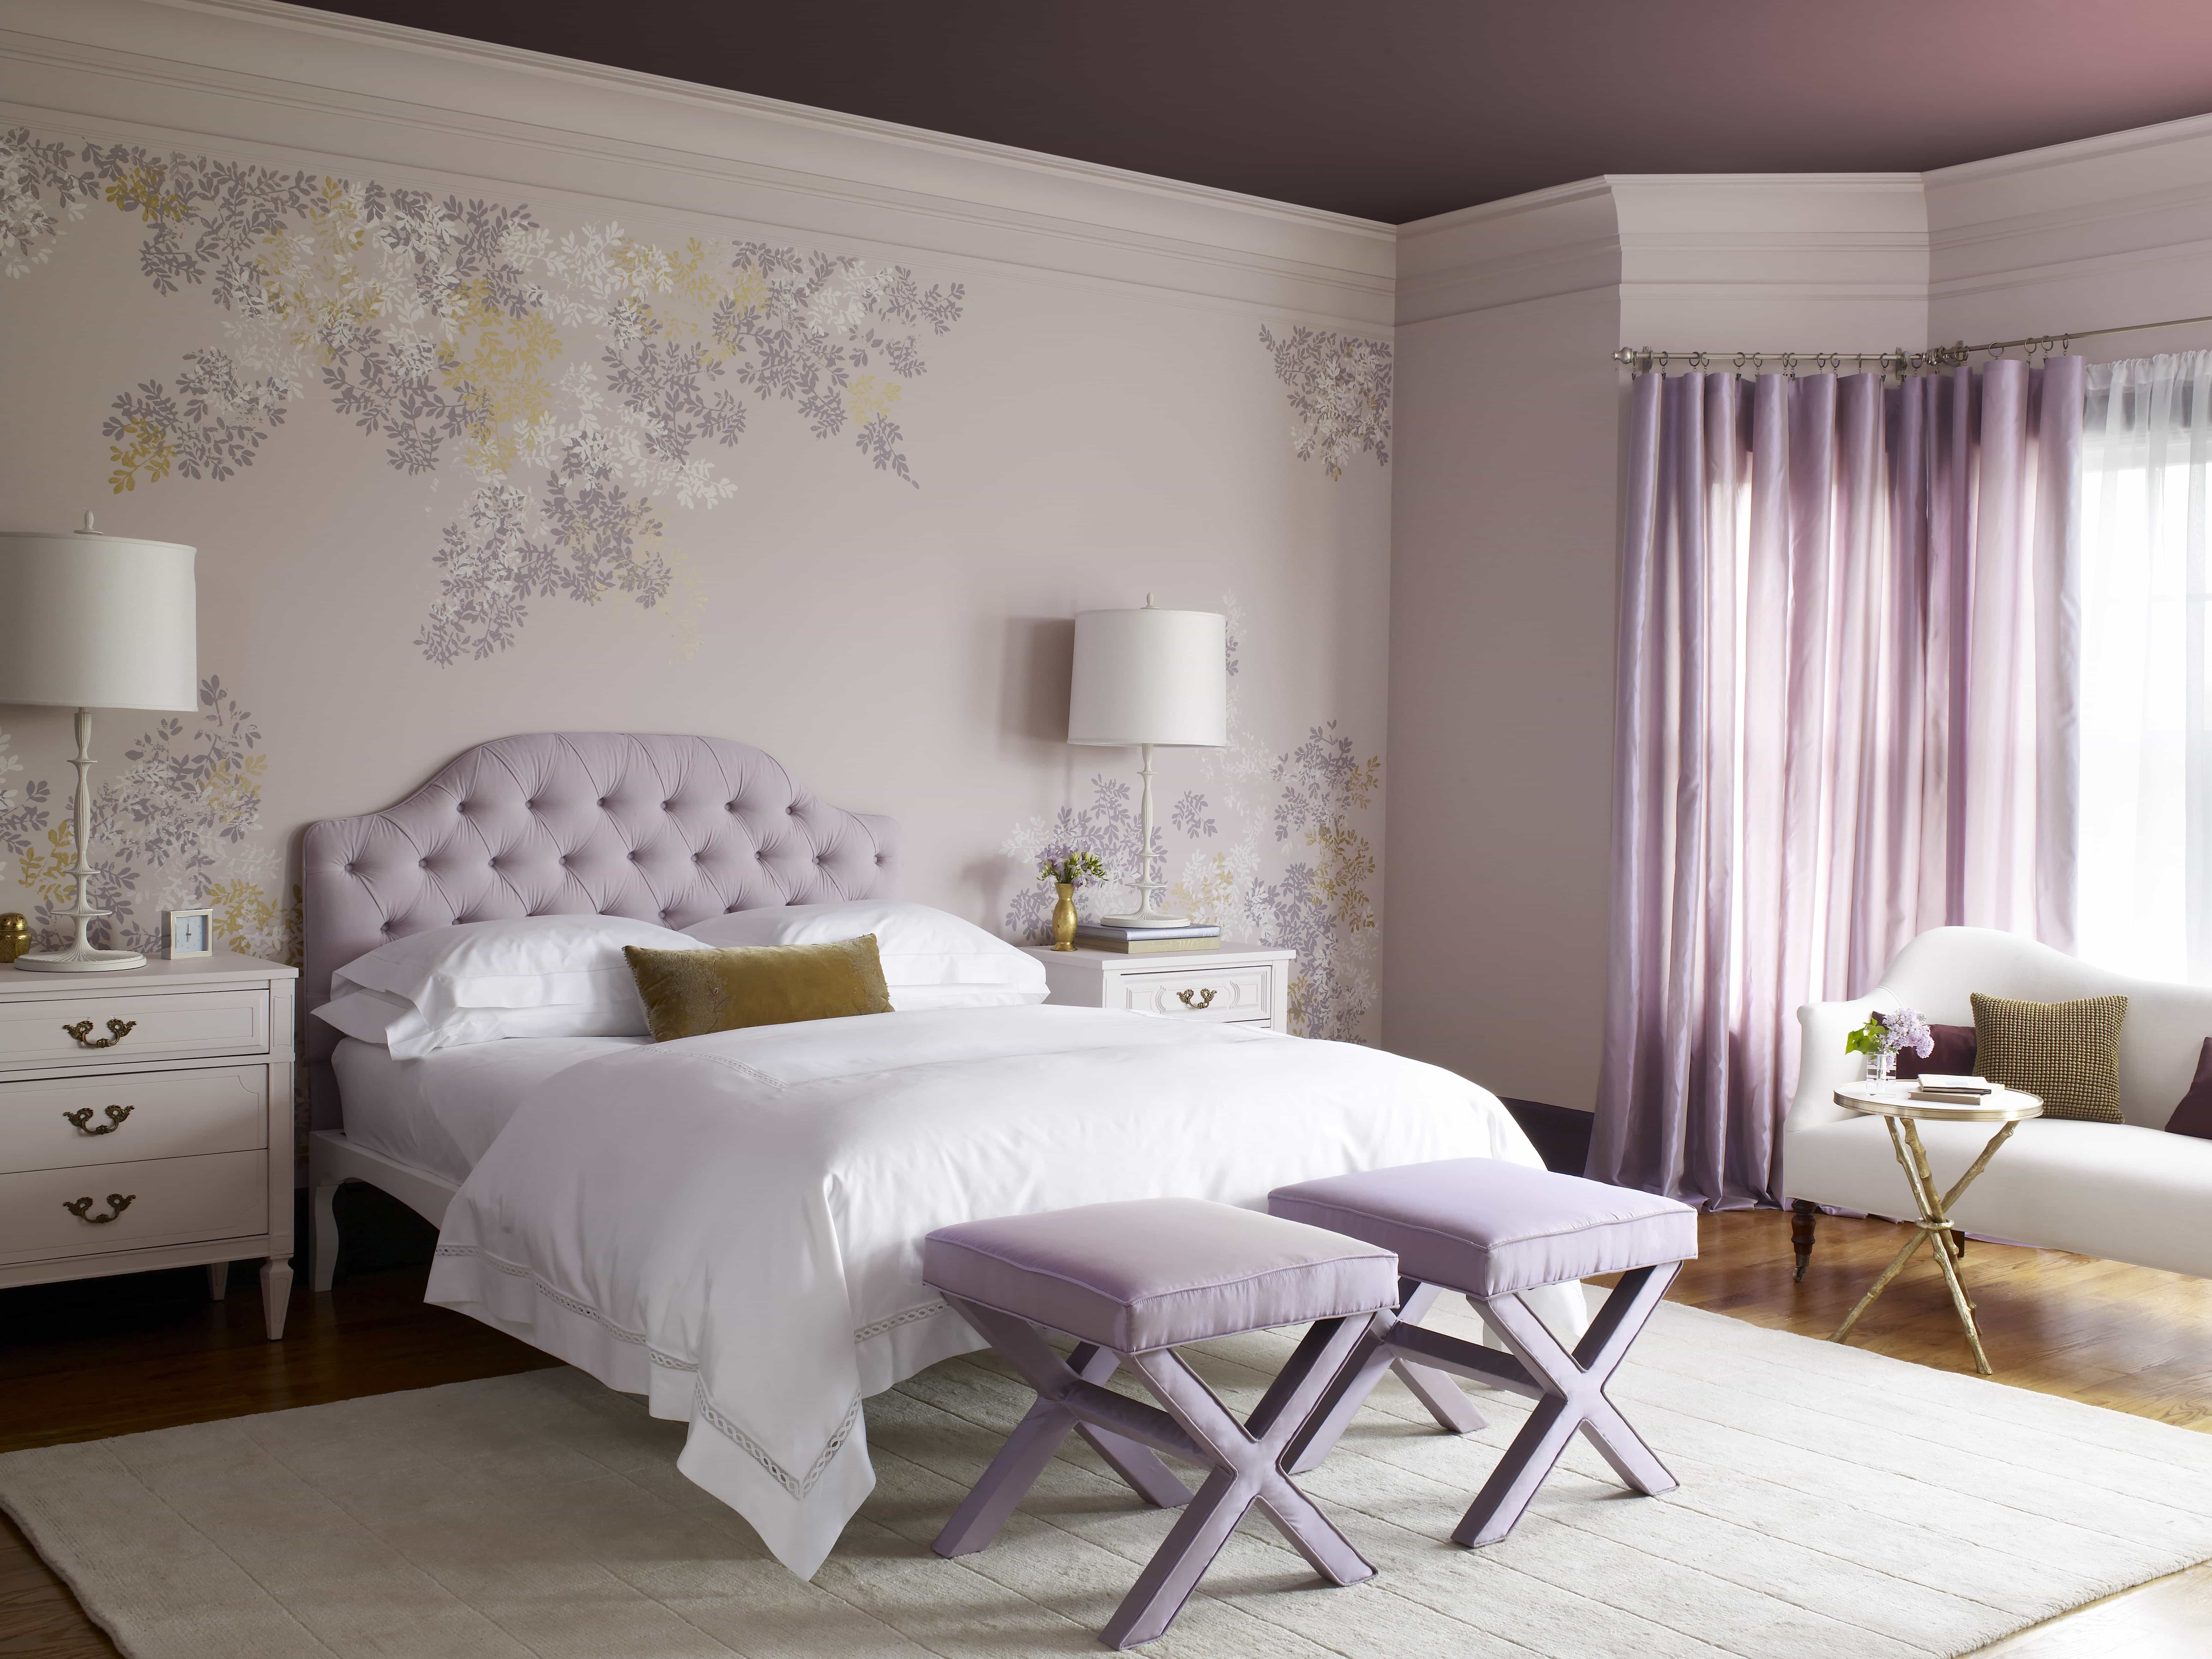 Serene Lavender Bedroom In Modern Decoration With Floral Wall Design (Image 22 of 28)